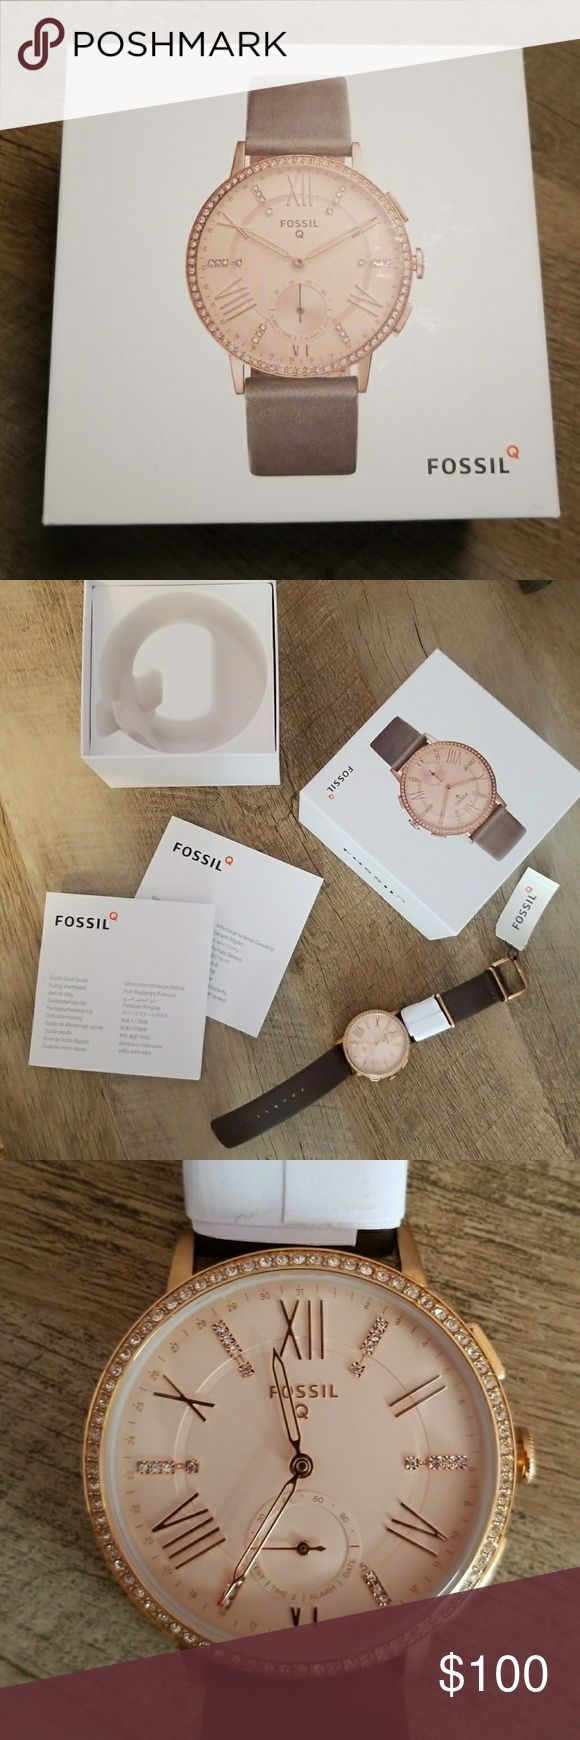 Fossil Hybrid Smartwatch - Q Gazer BRAND NEW Hybrid Smartwatch - real watch face with functionality to control certain apps on smartphone, tracks info through Fossil Q app, alerts new notifications. Rose gold face with CZ detail. Fossil Accessories Watches